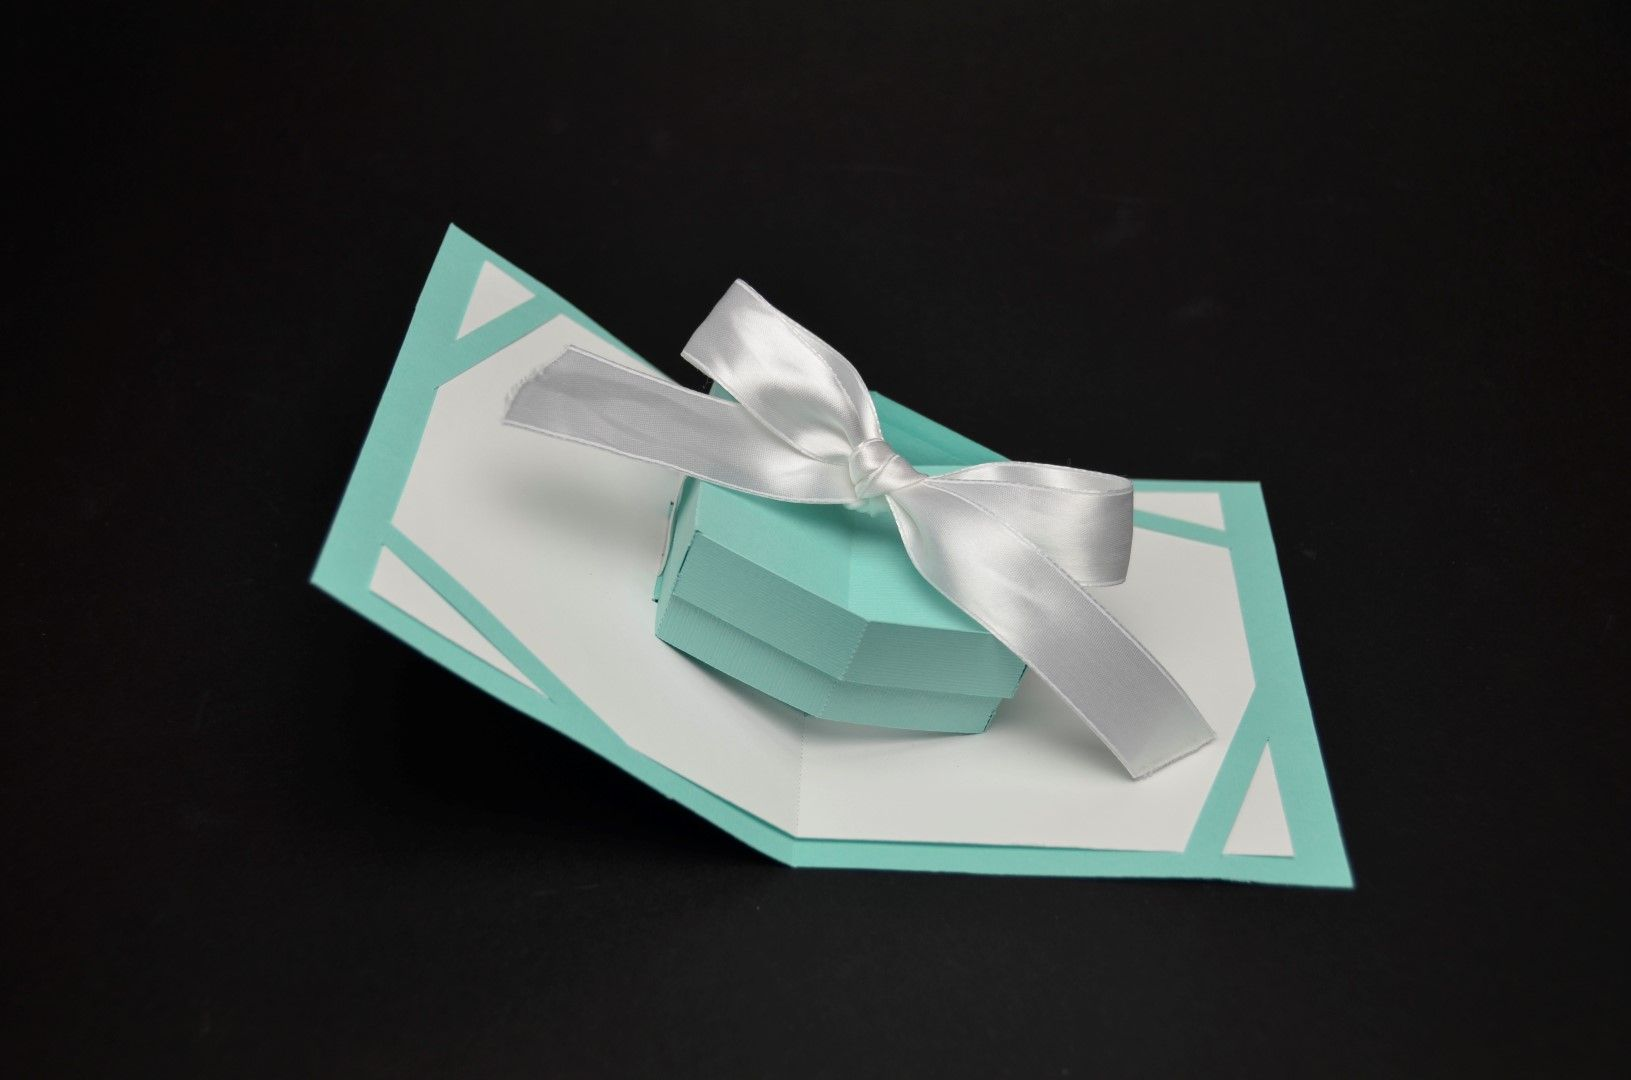 Pop Up Card Box Template In 2021 Pop Up Card Templates Pop Up Cards Box Template